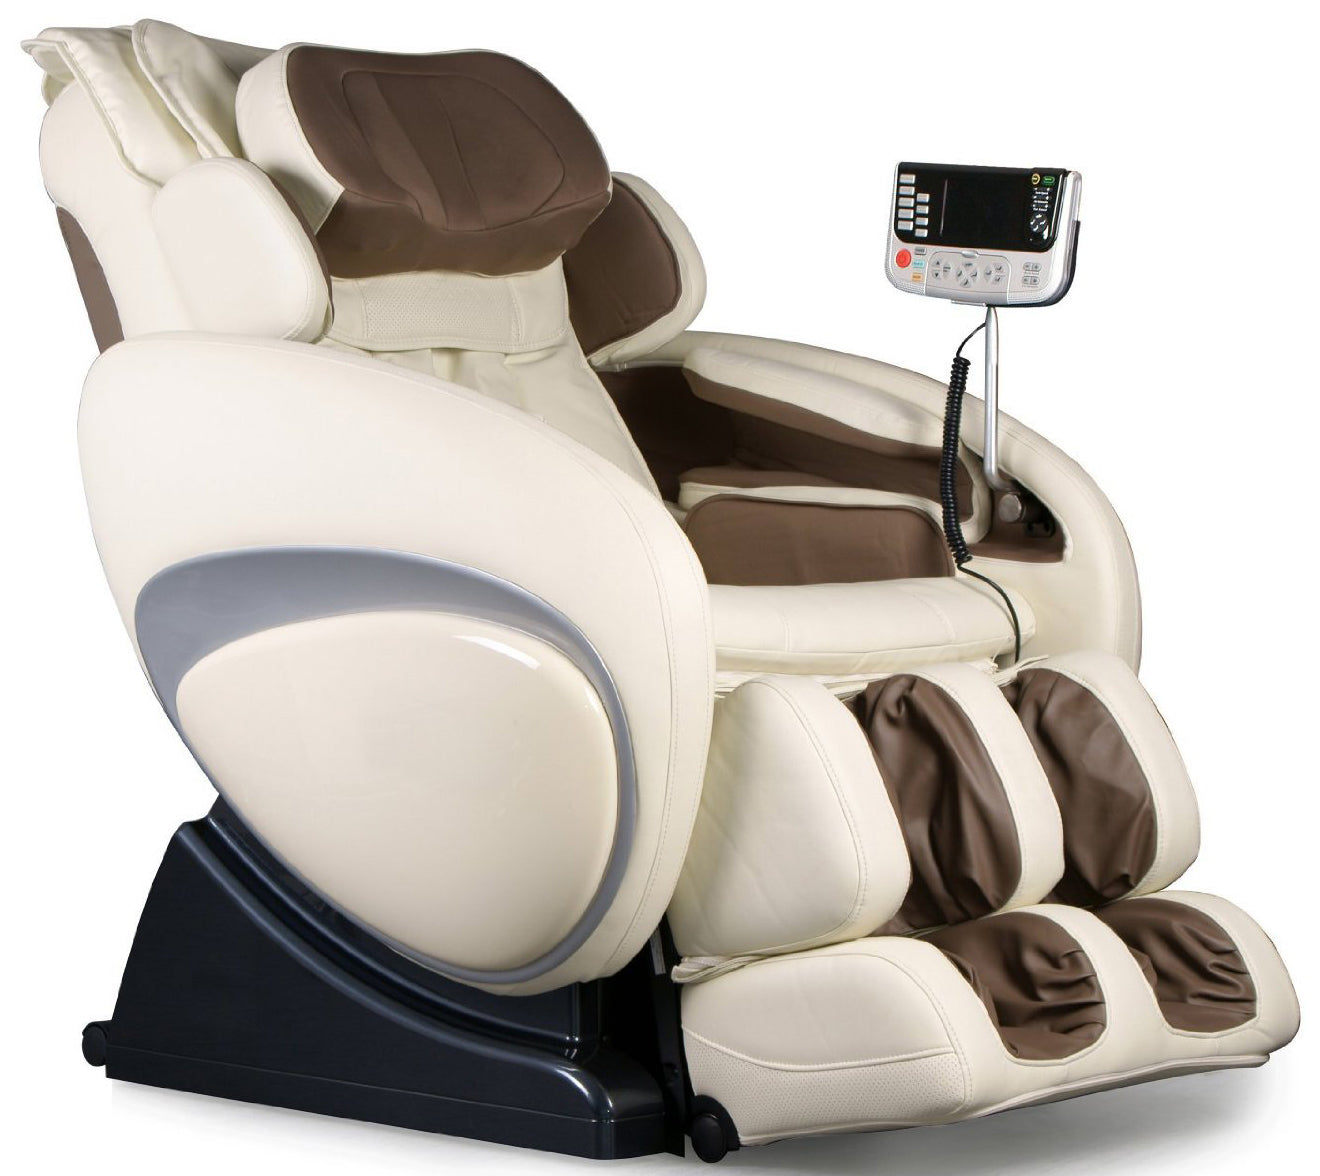 osaki-os-4000t-massage-chair-cream-large.jpg